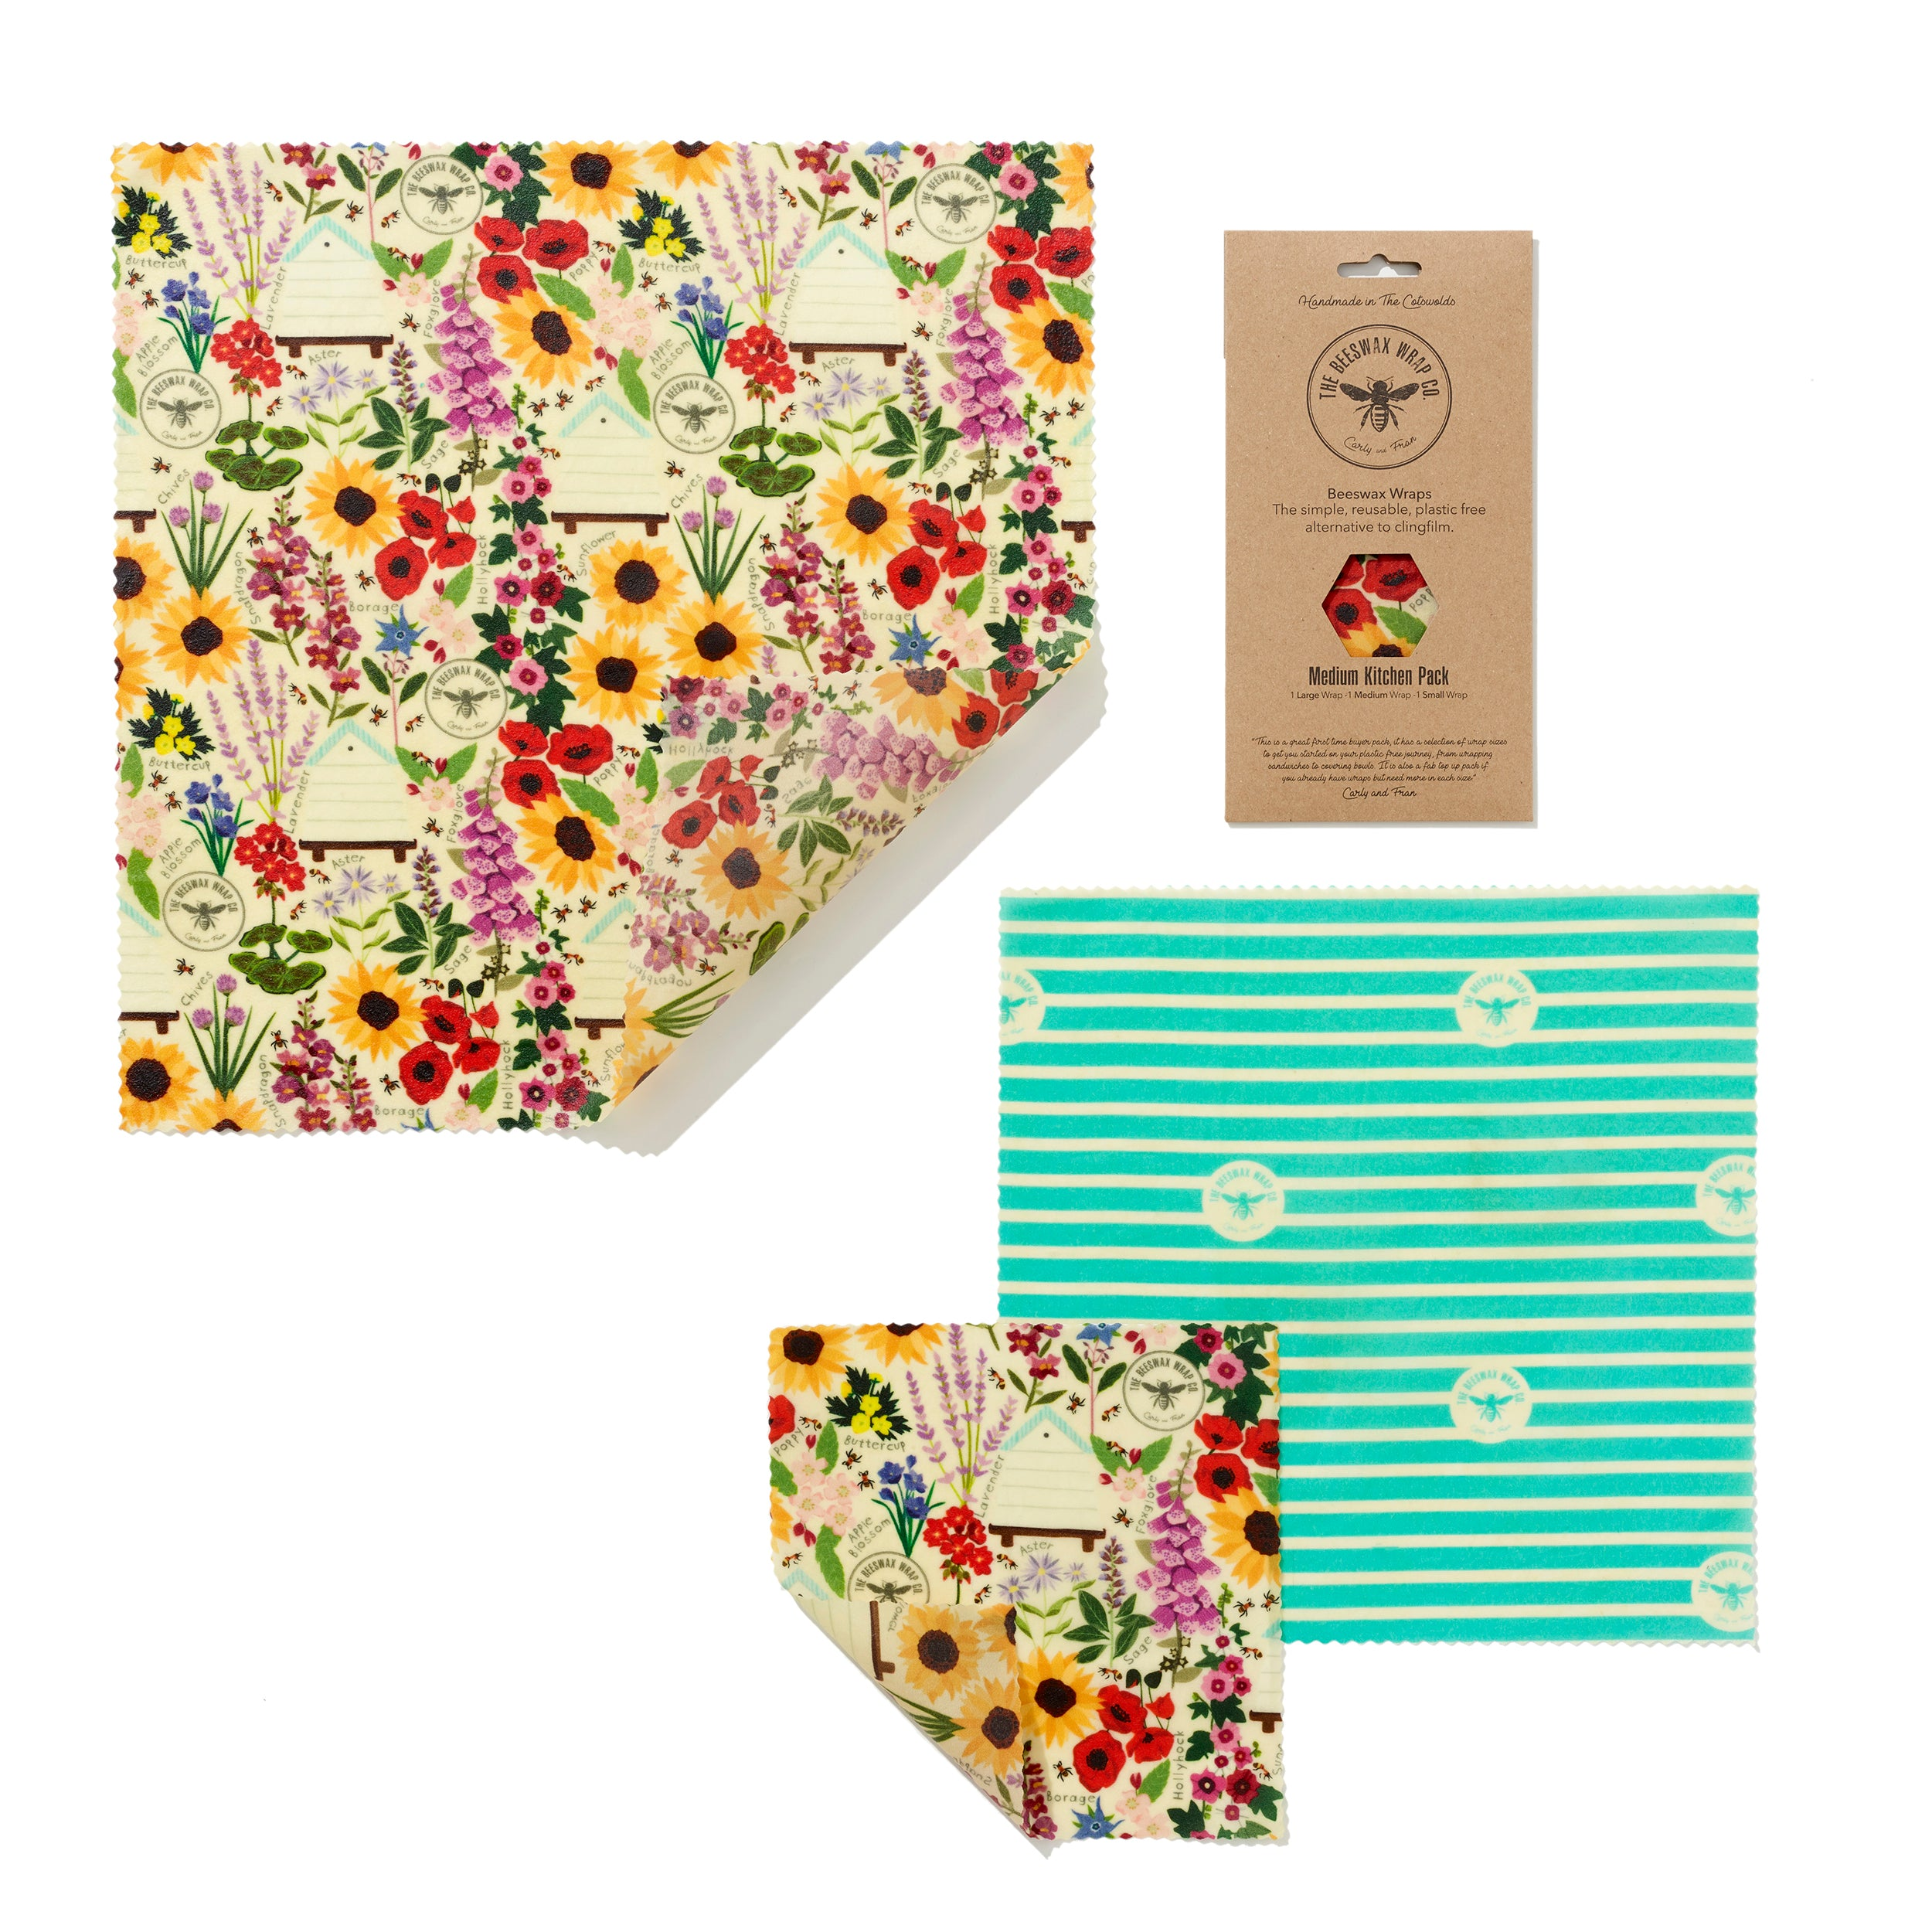 'Medium Kitchen Pack' Beeswax Wraps - Floral - The Weekly Shop | Plastic Free Online Shop